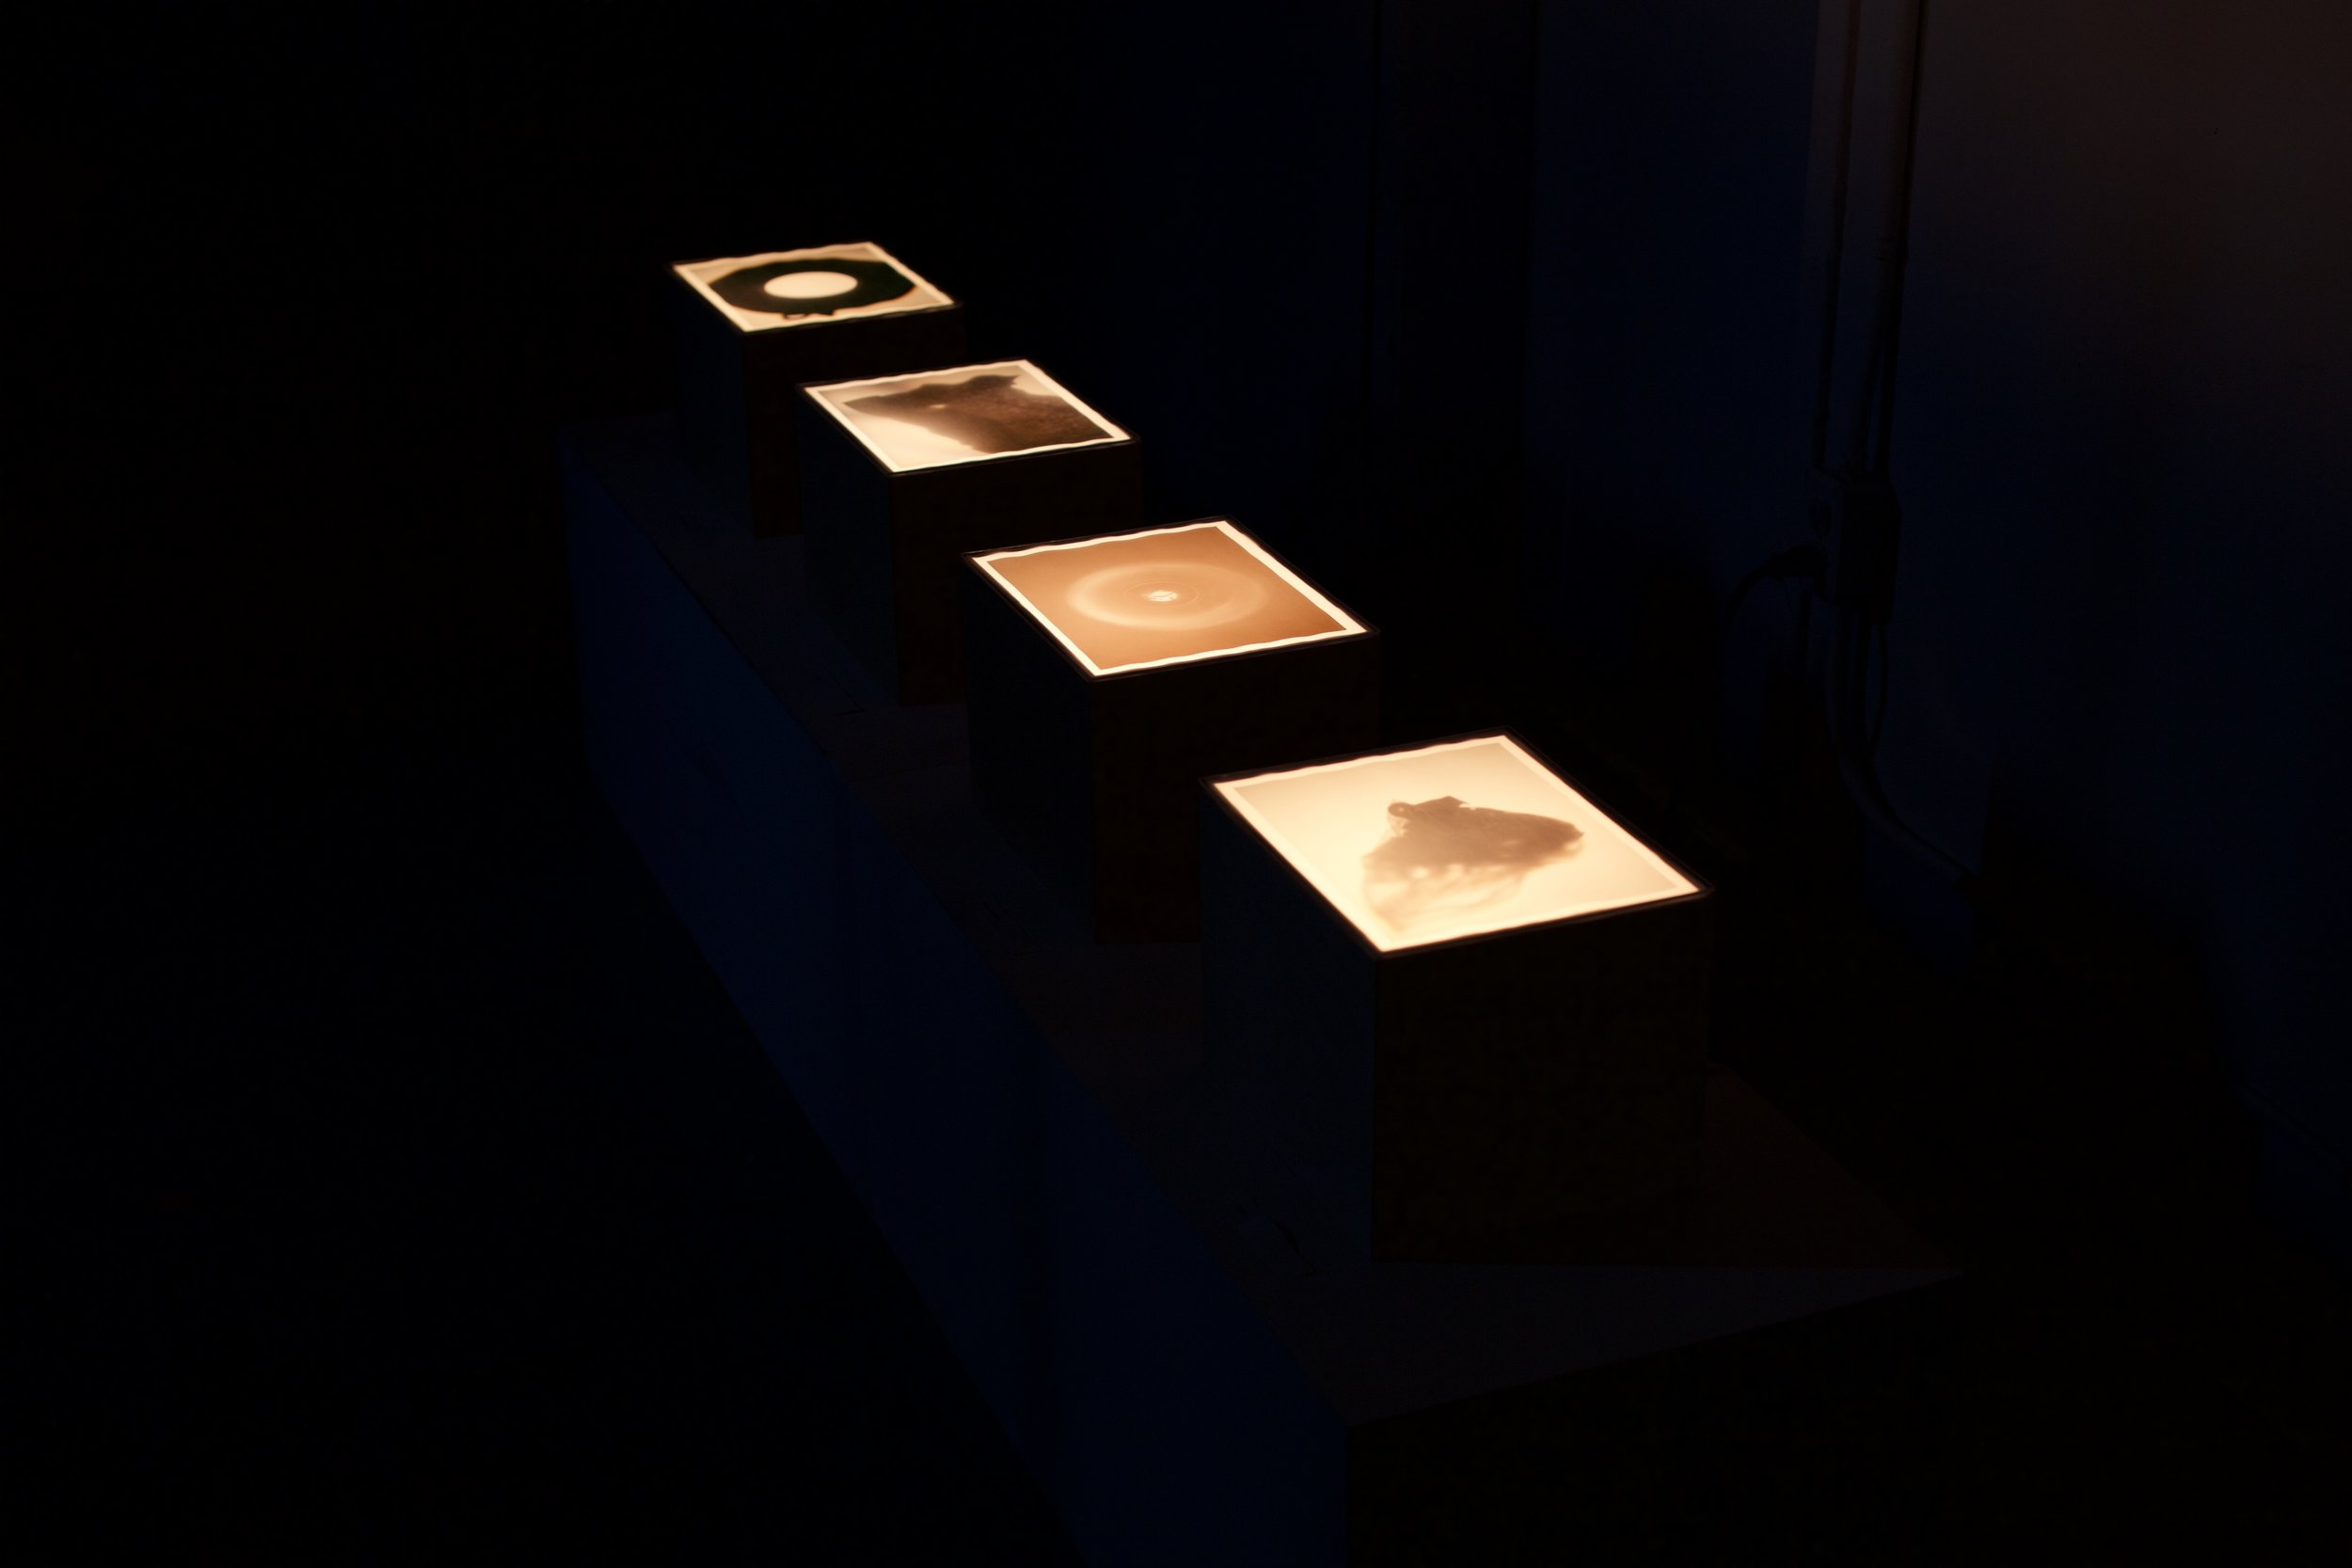 Vellum prints placed under Plexiglas sheets and lit by a soft incandescent bulb placed in the interior of each box. Boxes are made of plywood.